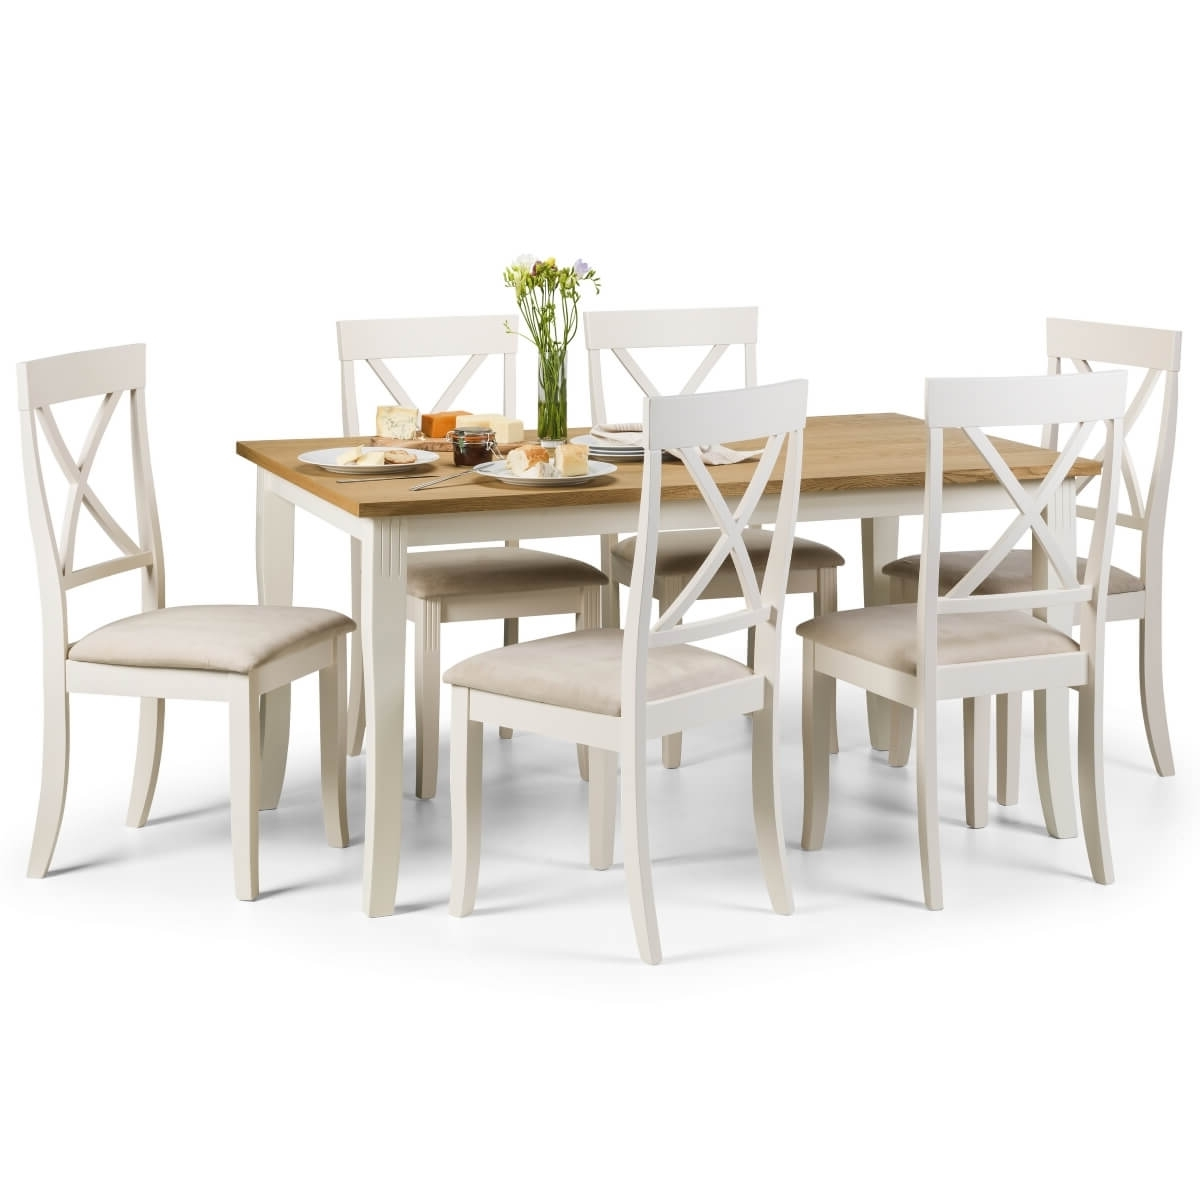 Trendy Dining Set – Davenport Dining Table And 6 Chairs In Ivory Oak Dav005 Inside Oak Dining Tables With 6 Chairs (View 9 of 25)